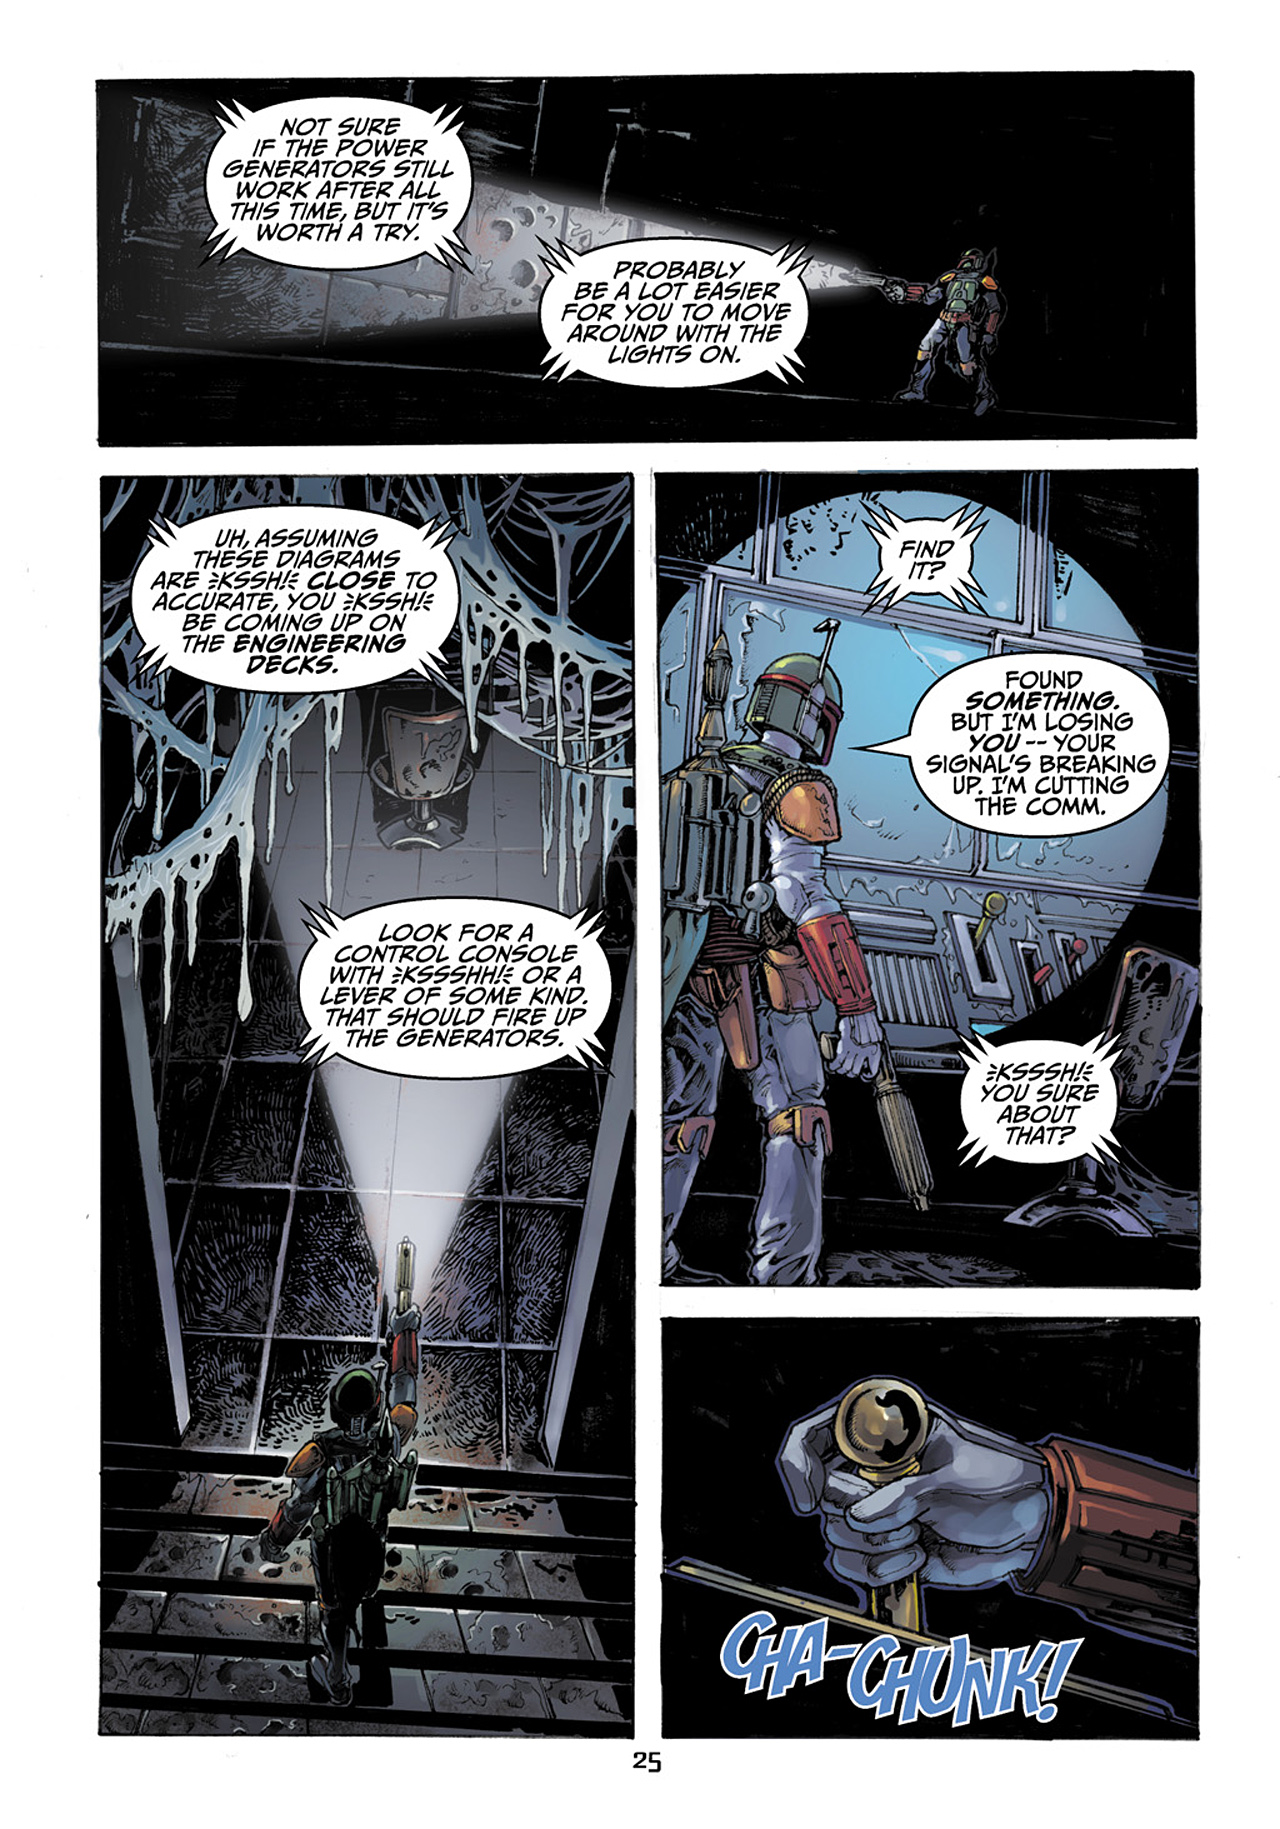 Read online Star Wars Adventures comic -  Issue # Issue Boba Fett and the Ship of Fear - 26